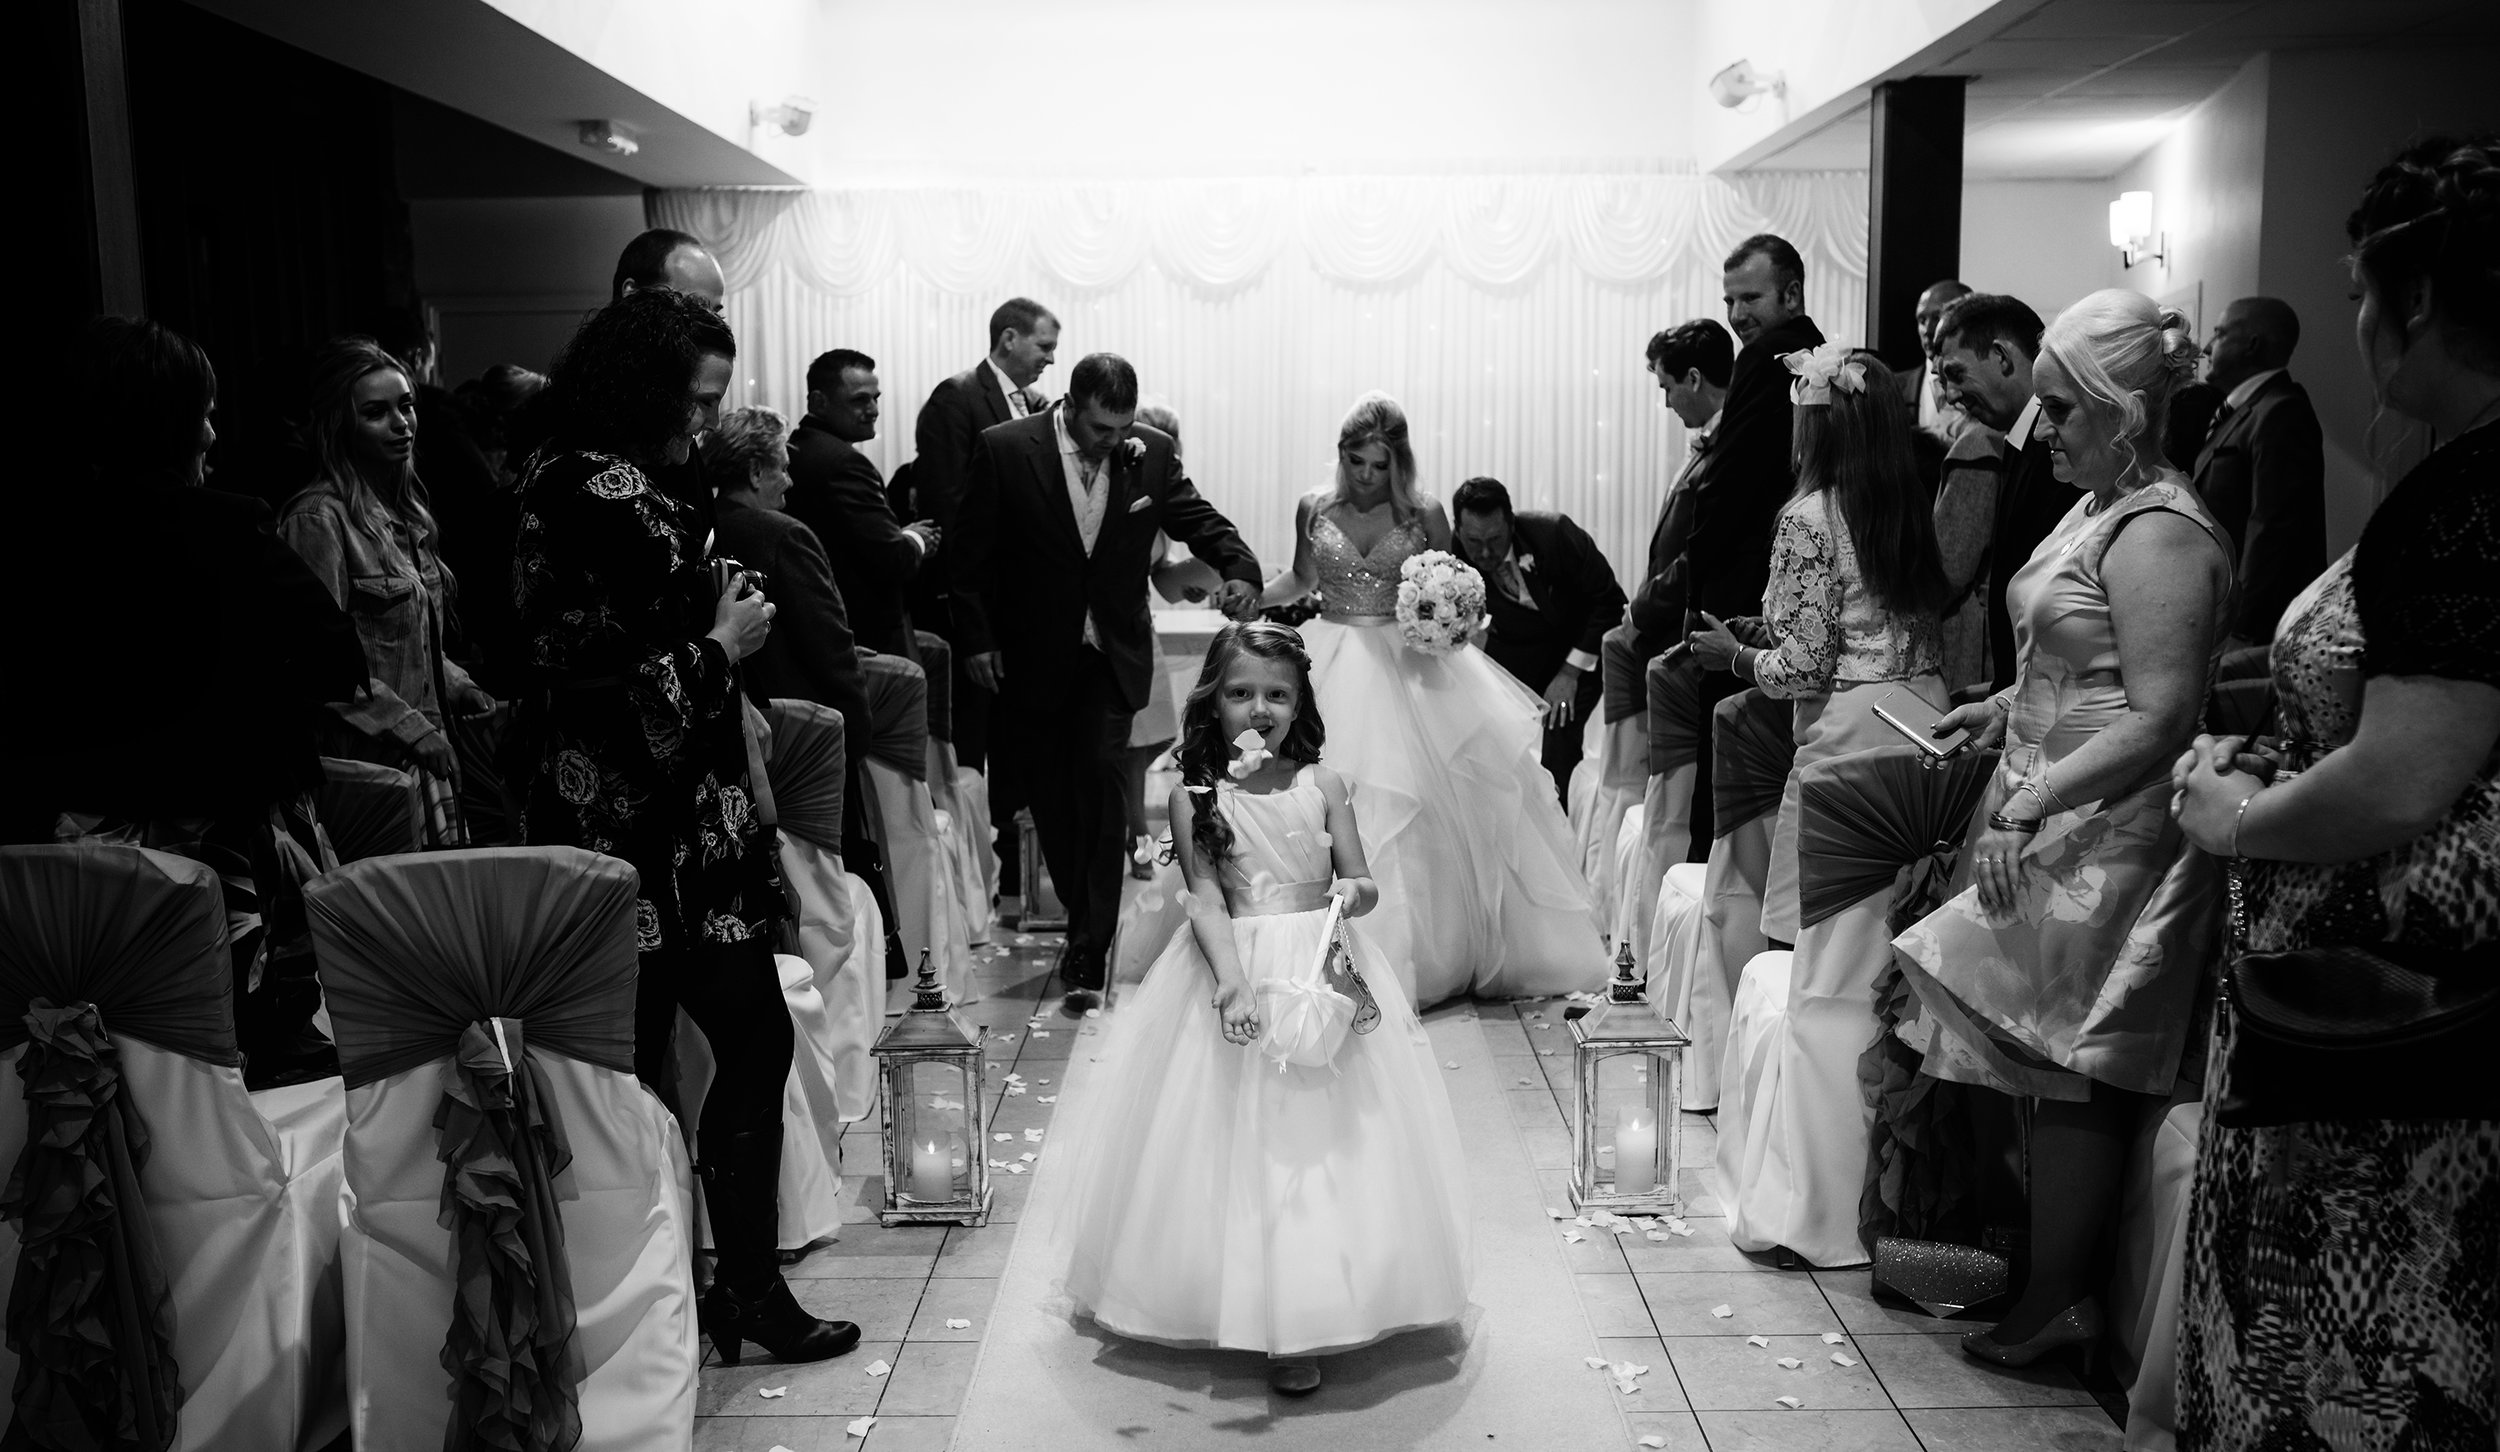 Flower girl sprinkling flowers during the happy couples exit